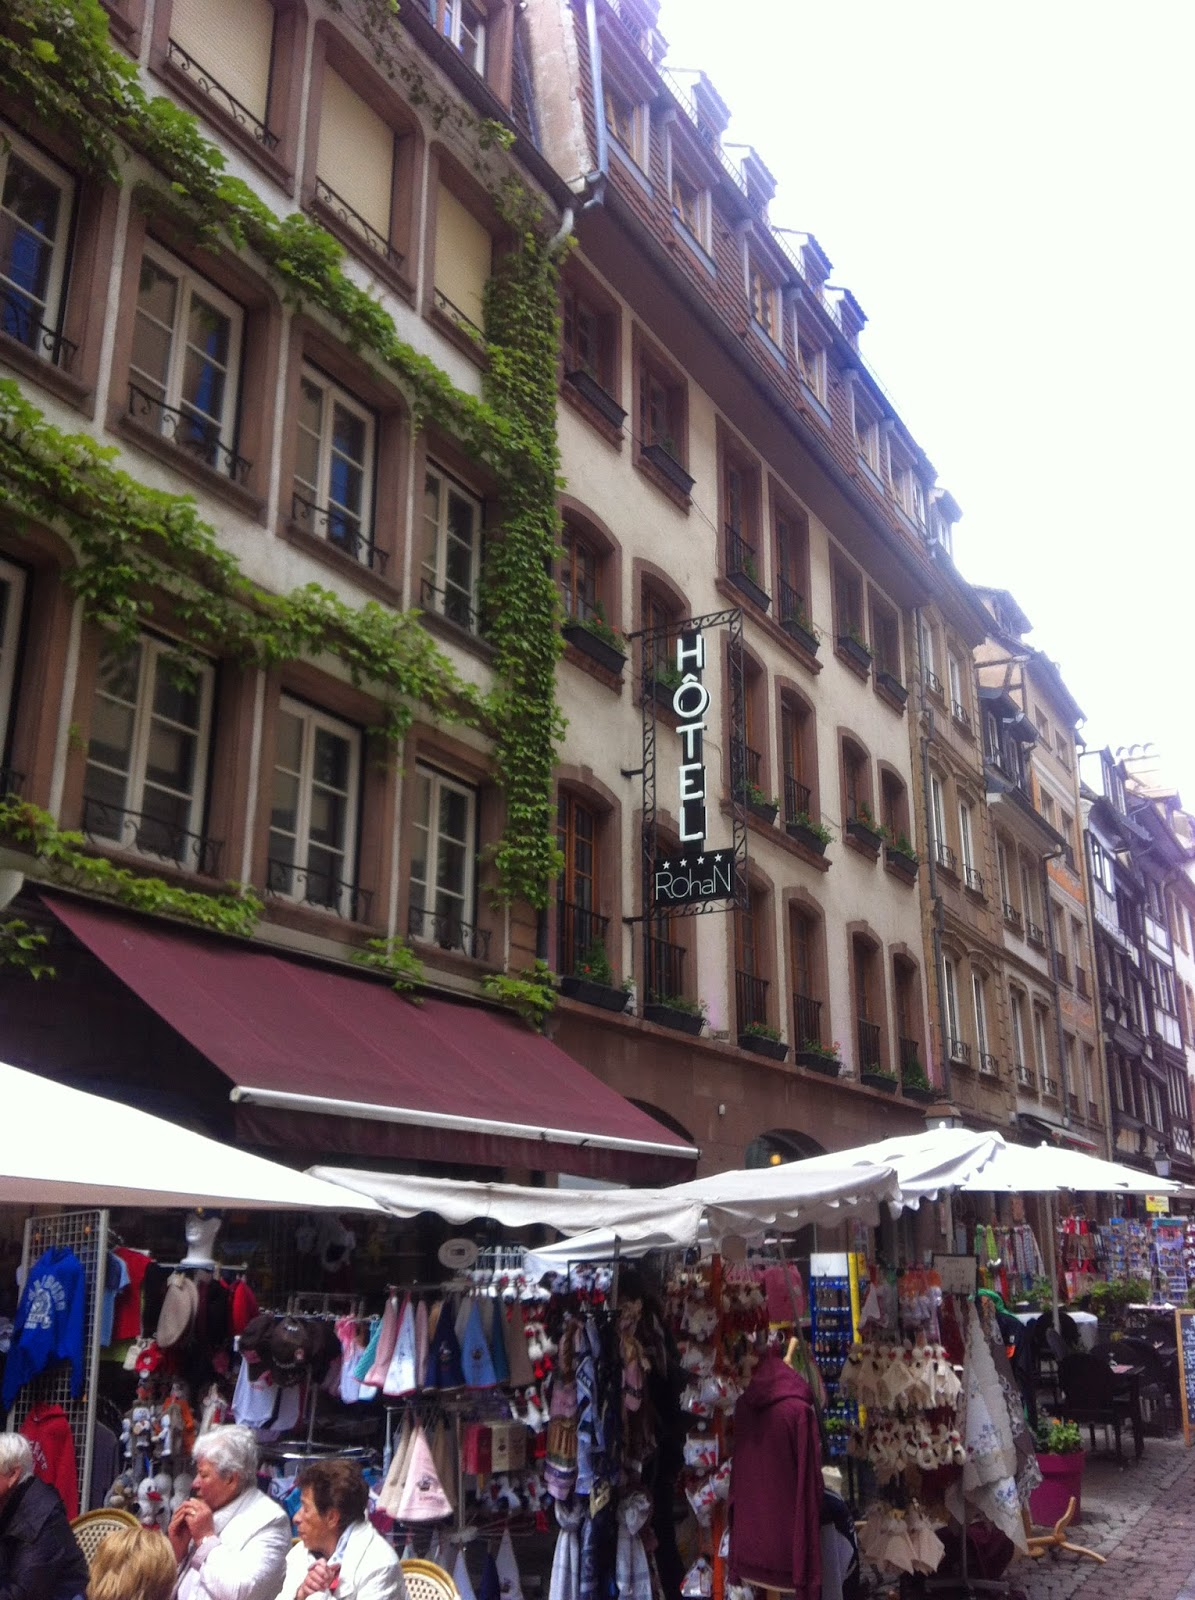 One day shopping excursion to Strassbourg, France